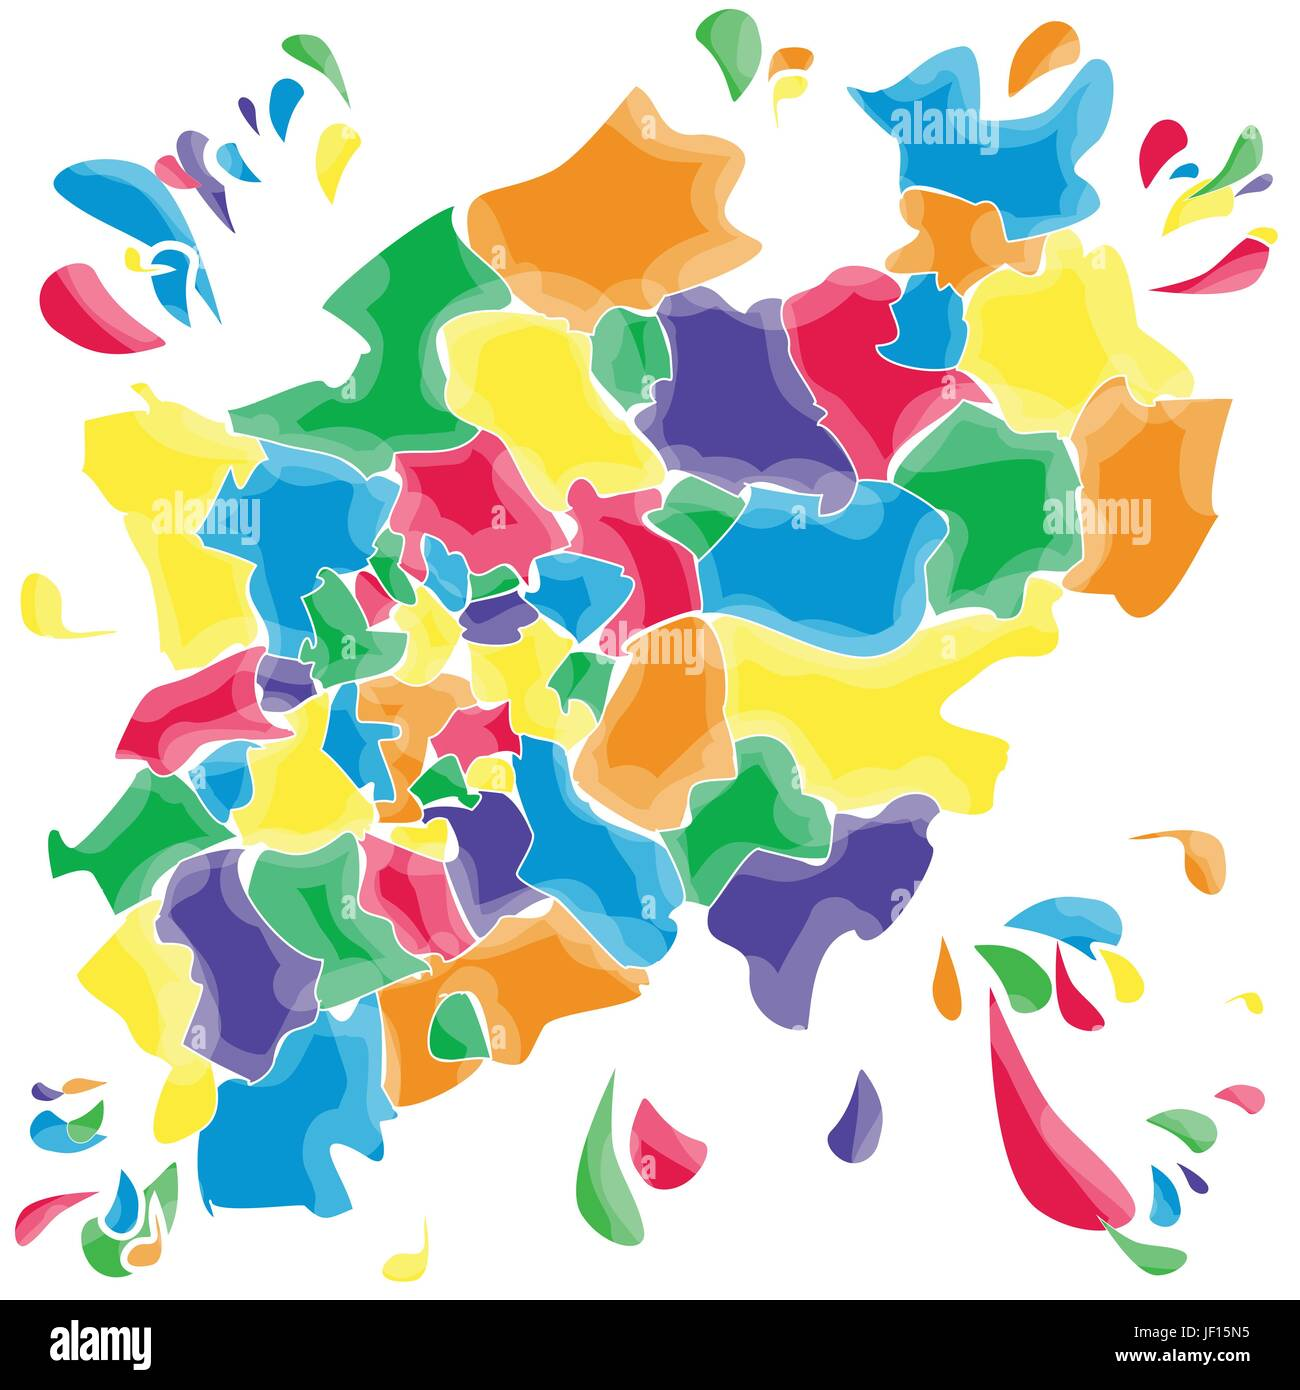 stains and smudges with north rhine-westphalia - Stock Image